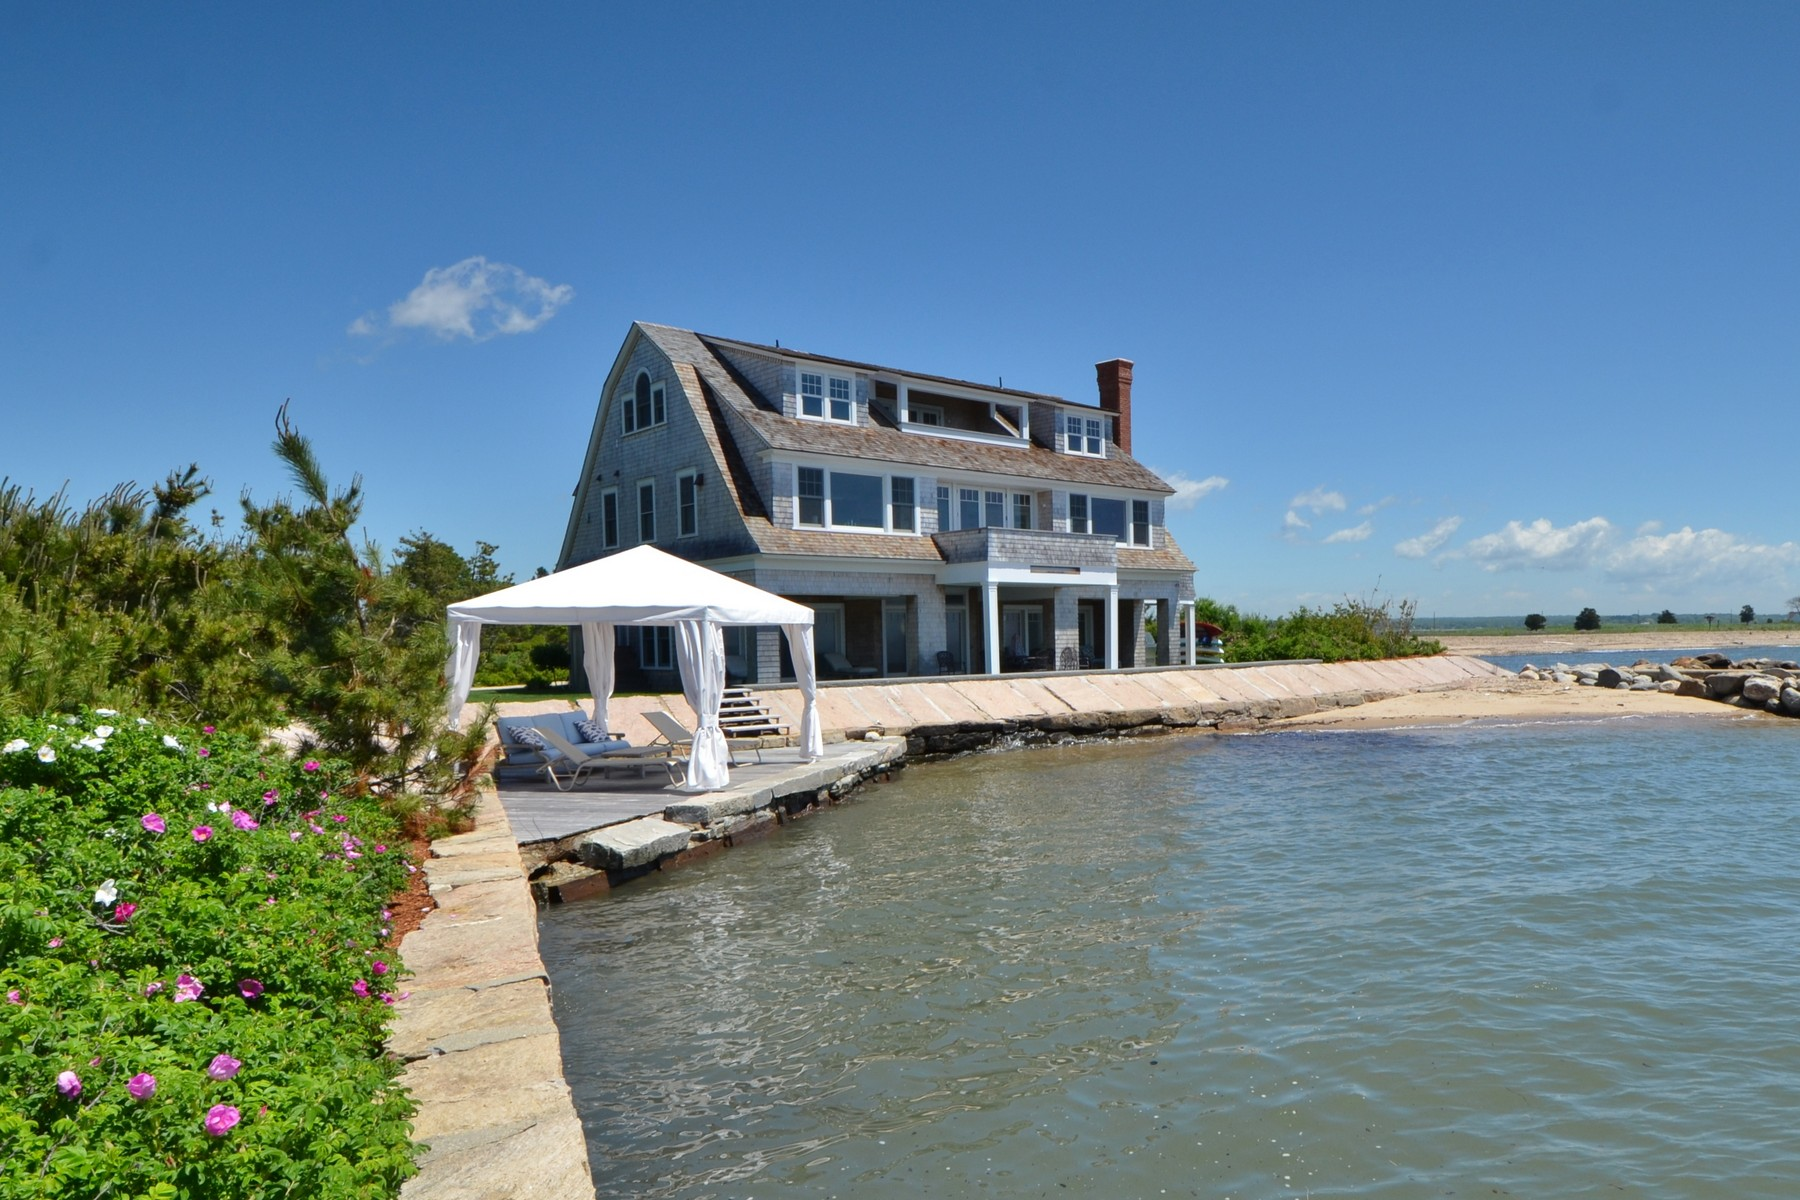 Single Family Homes for Sale at Waterfront Paradise At Your Fingertips 6 Mohegan Avenue Old Saybrook, Connecticut 06475 United States